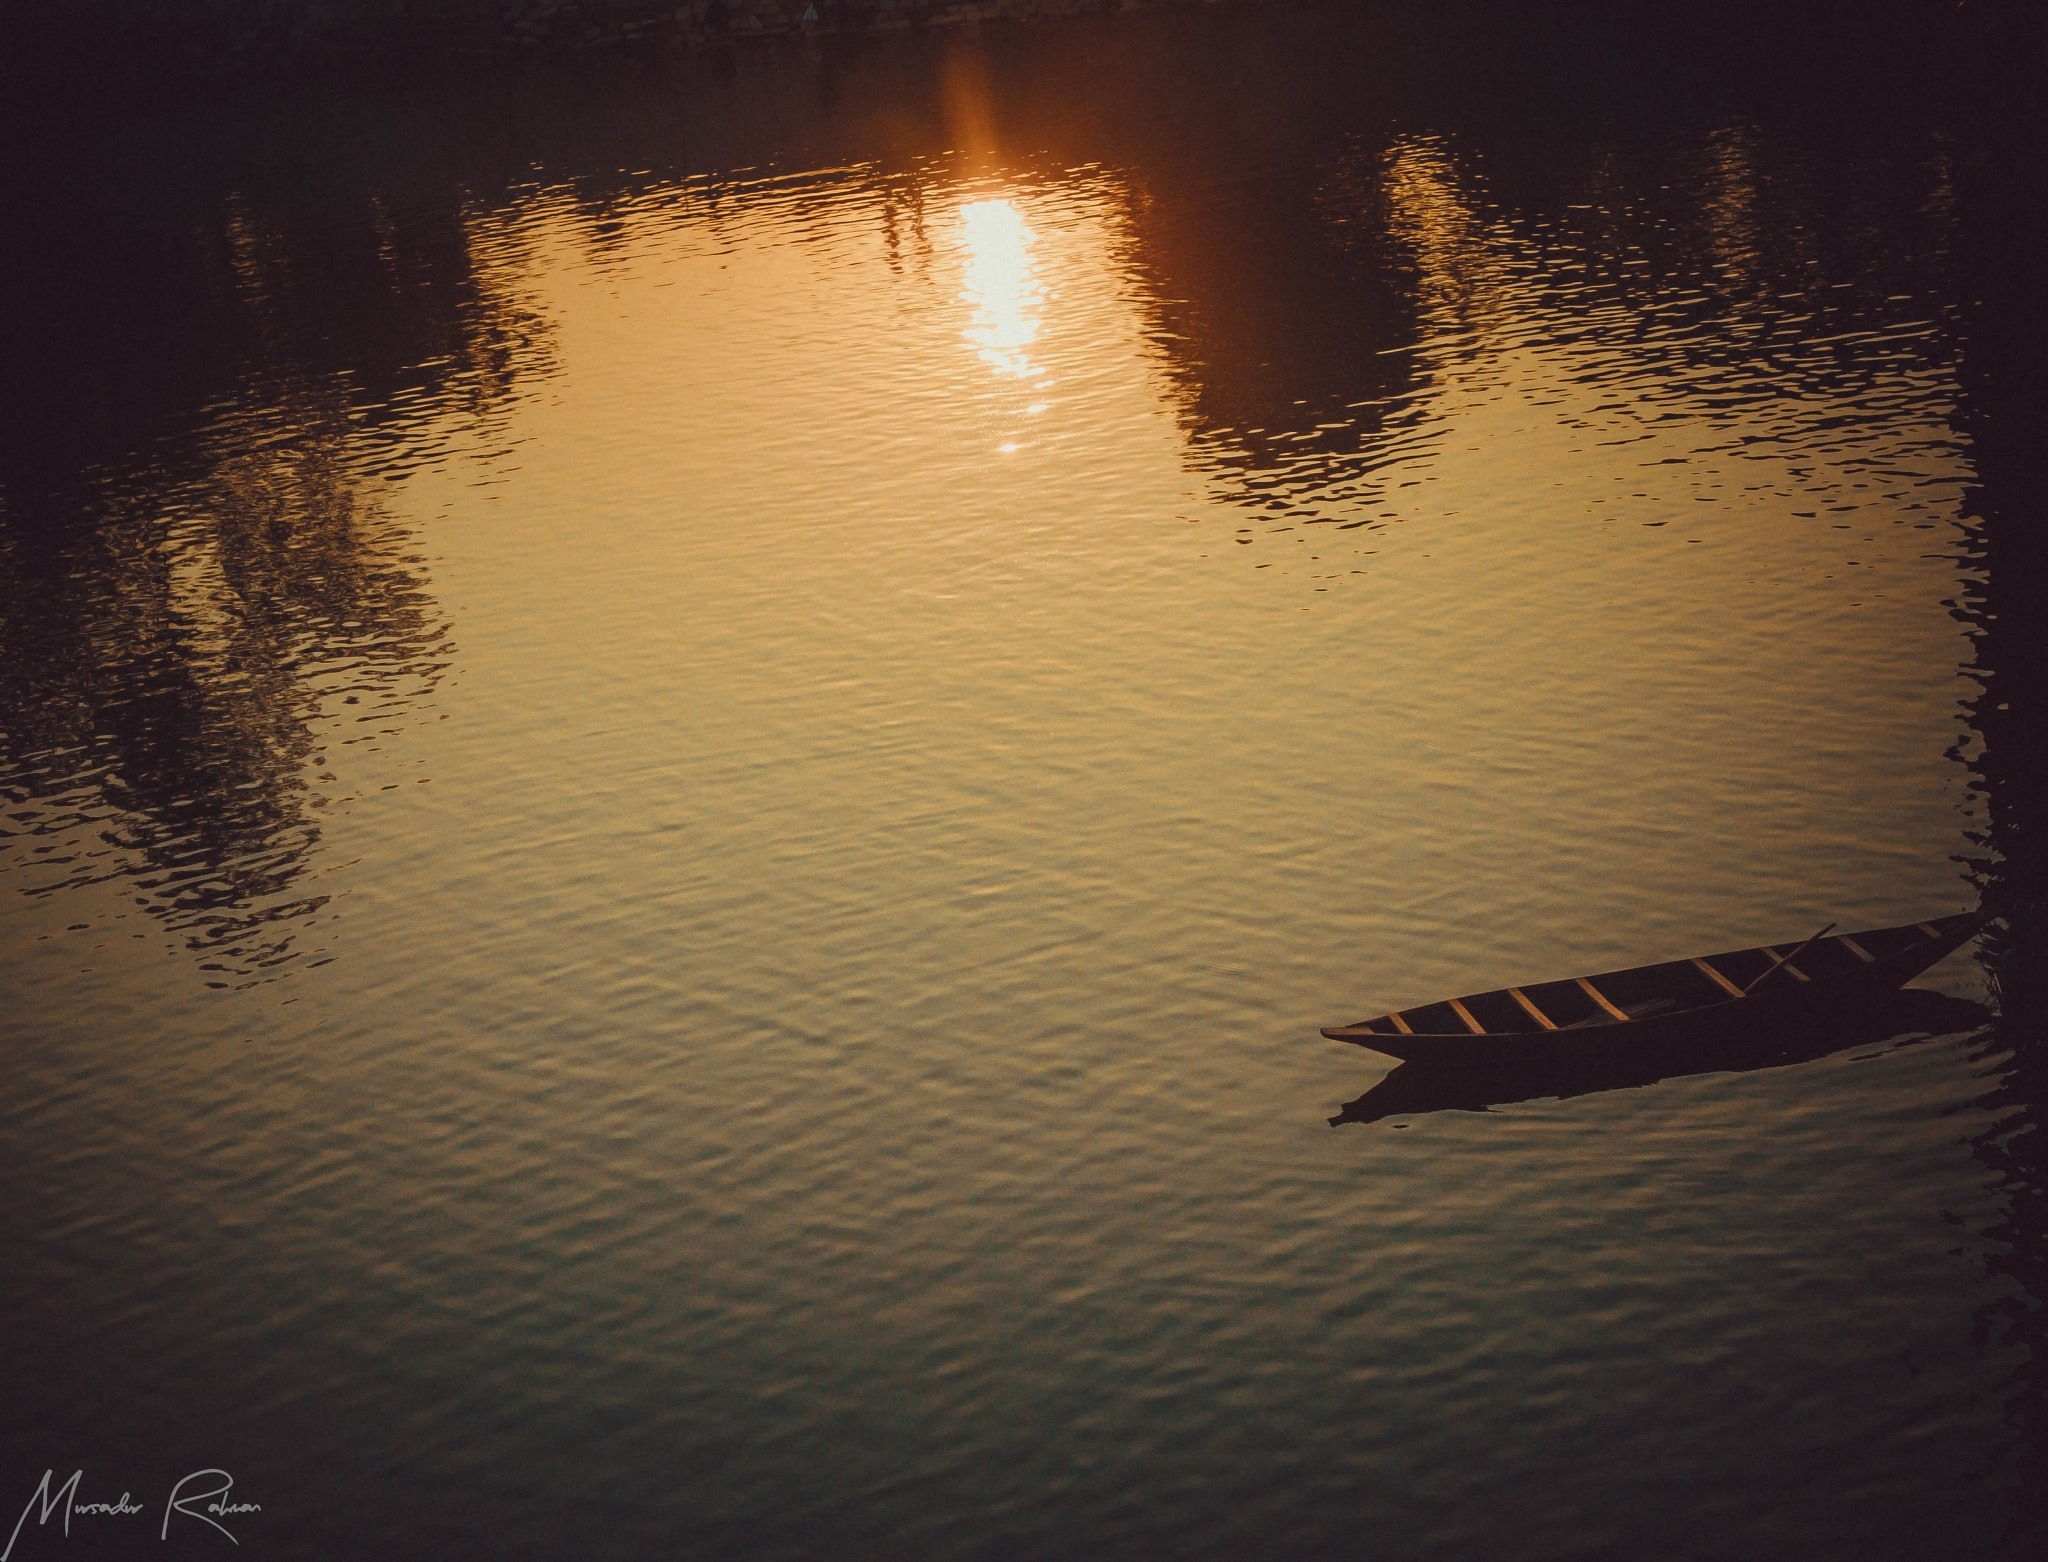 """Before Sunset """"Another-lonely-boat"""" by Mursadur Rahman Akash"""